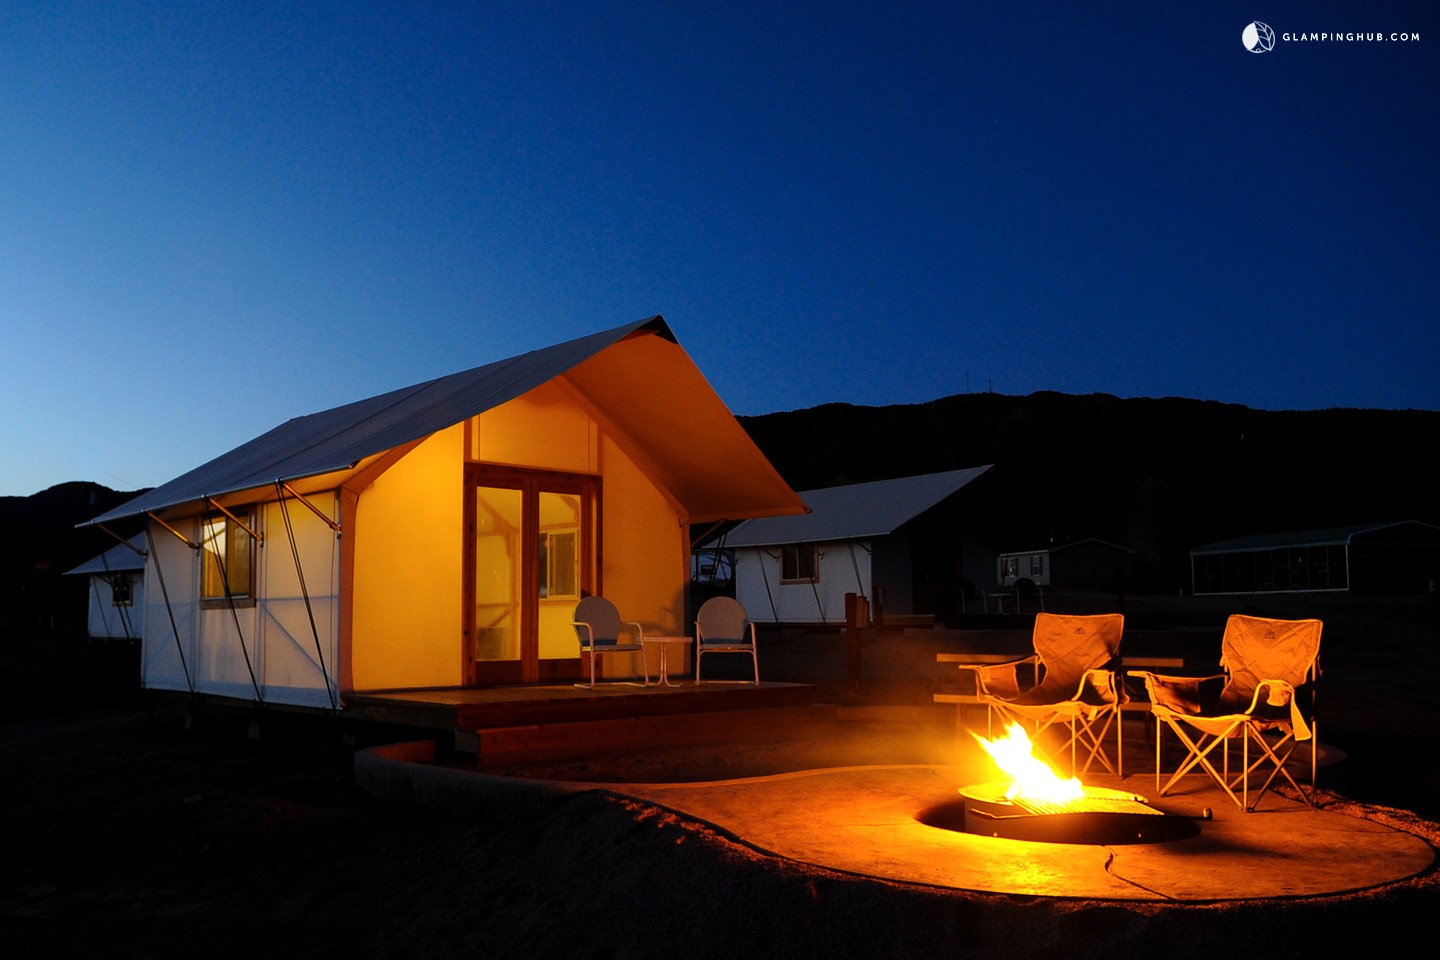 Glamping Tent Cabins In Royal Gorge Colorado